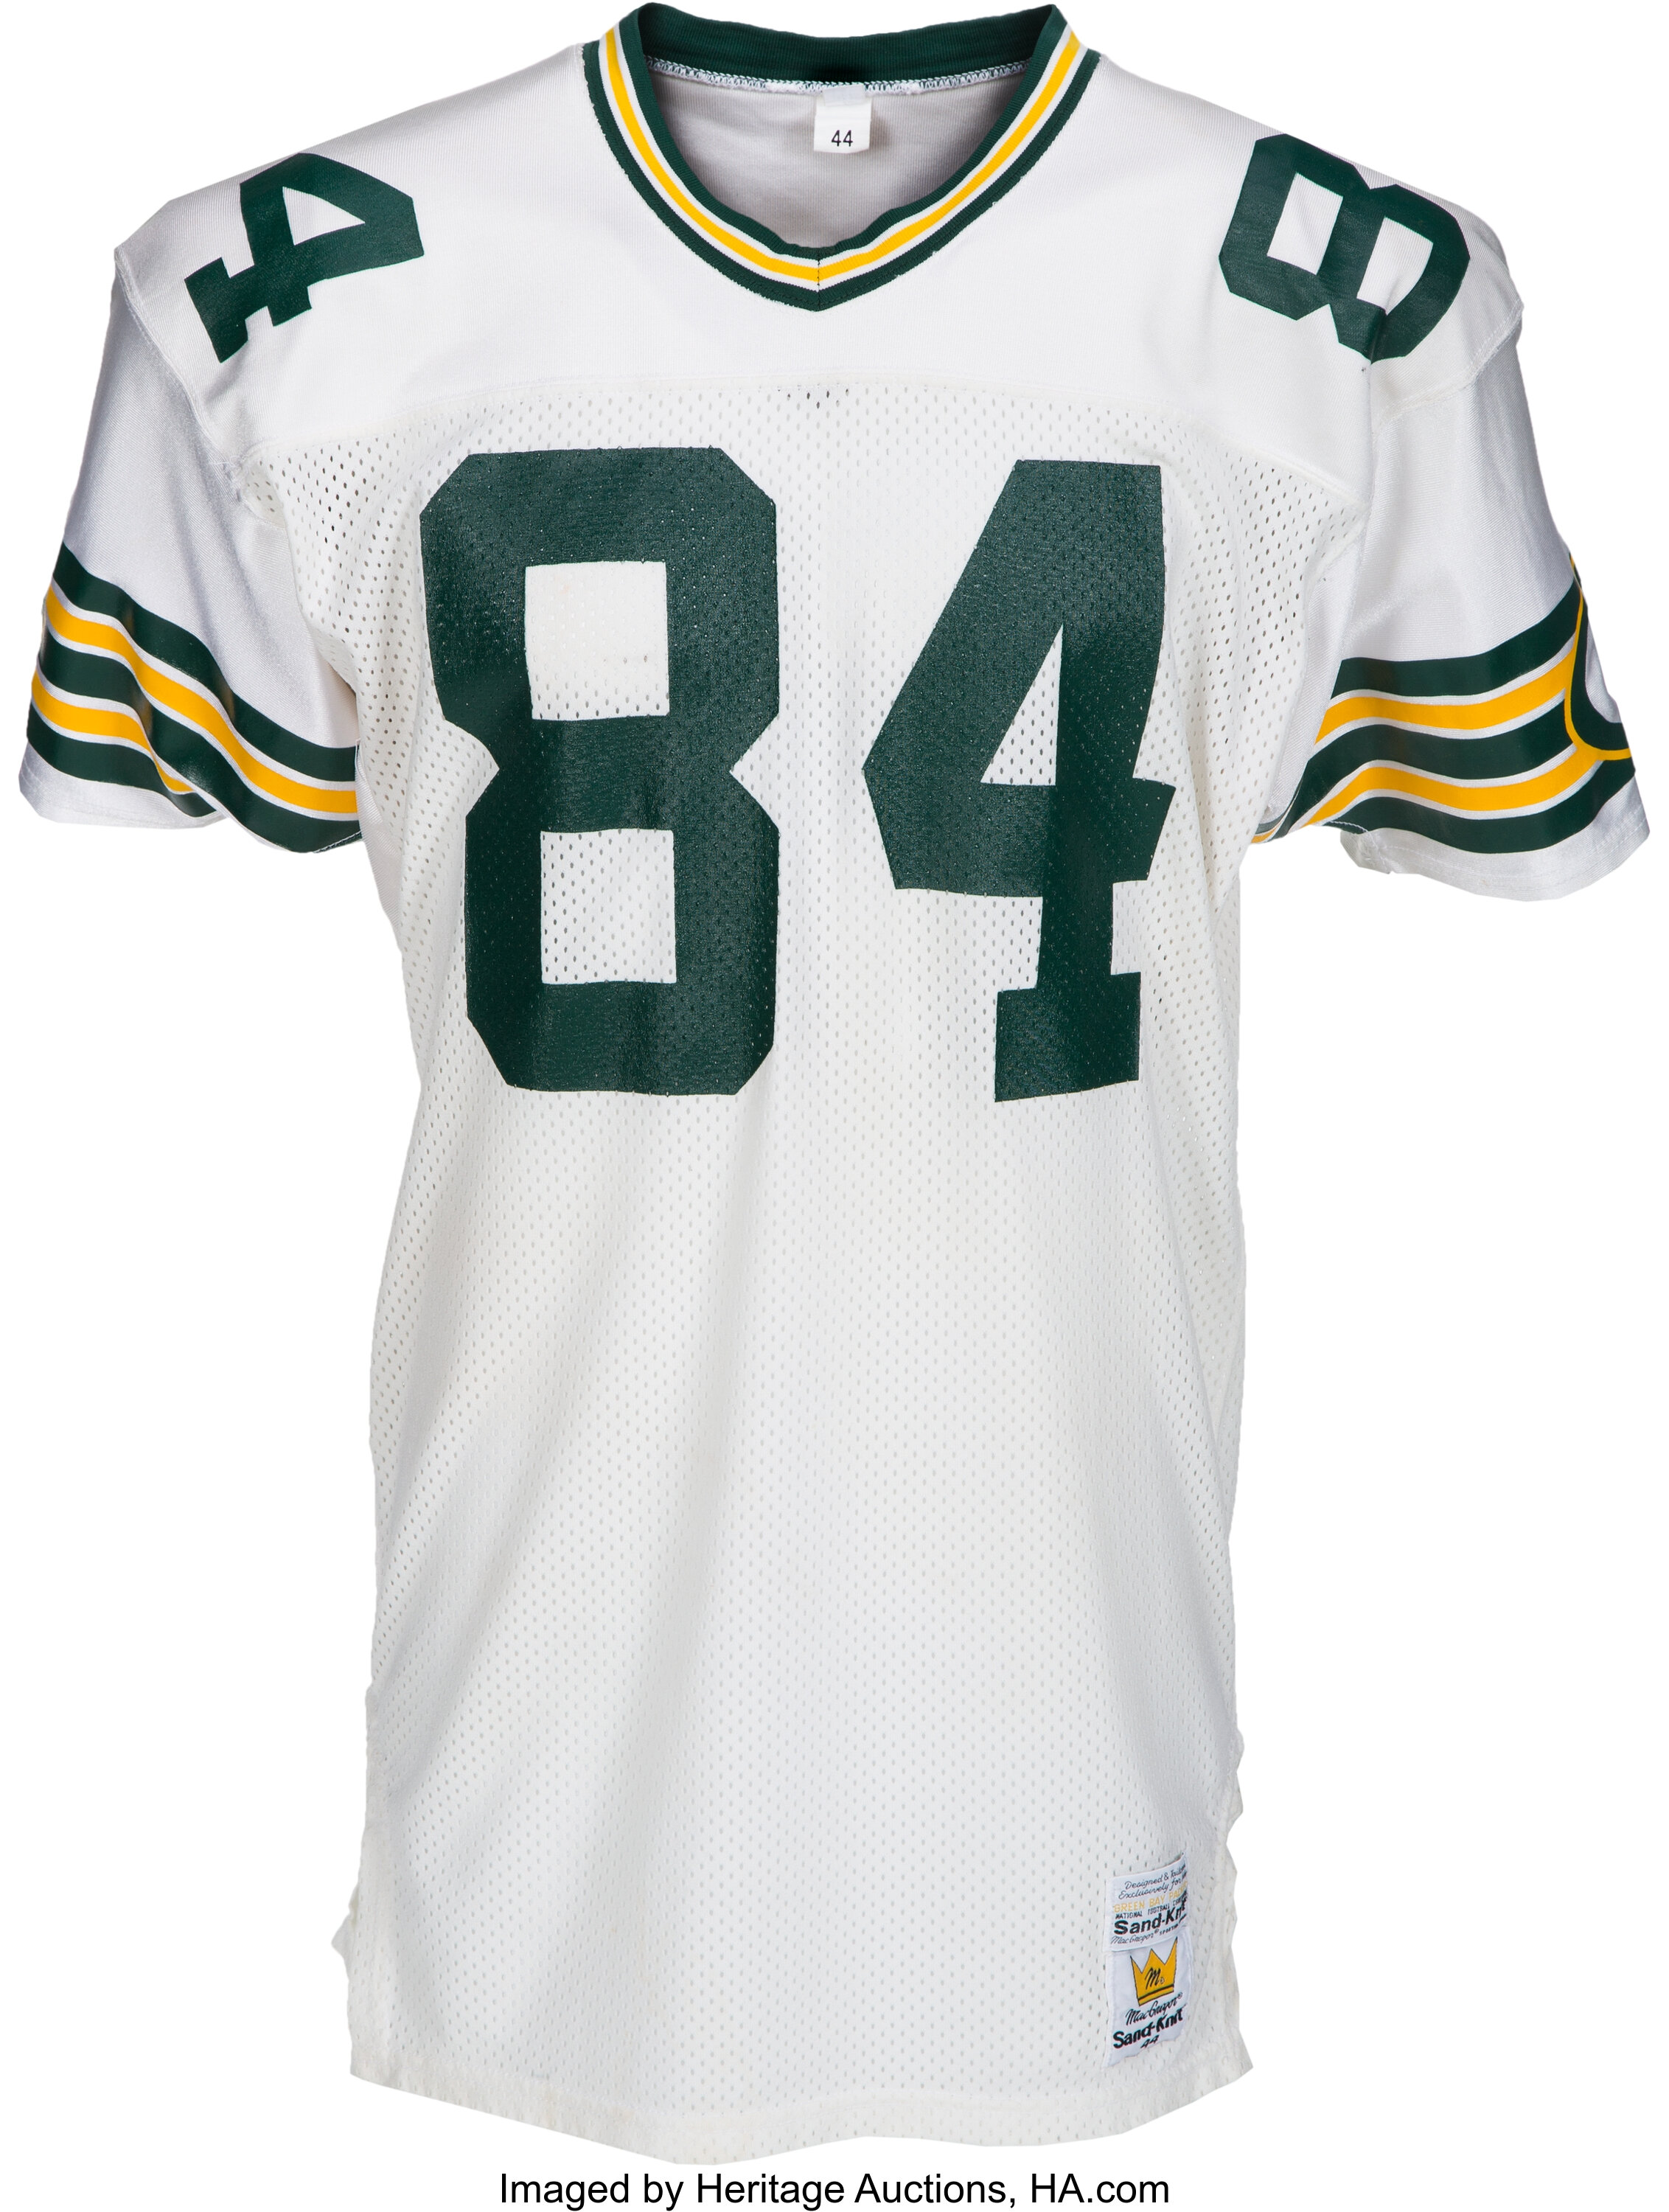 1988 Sterling Sharpe Game Worn, Signed Green Bay Packers Rookie ...